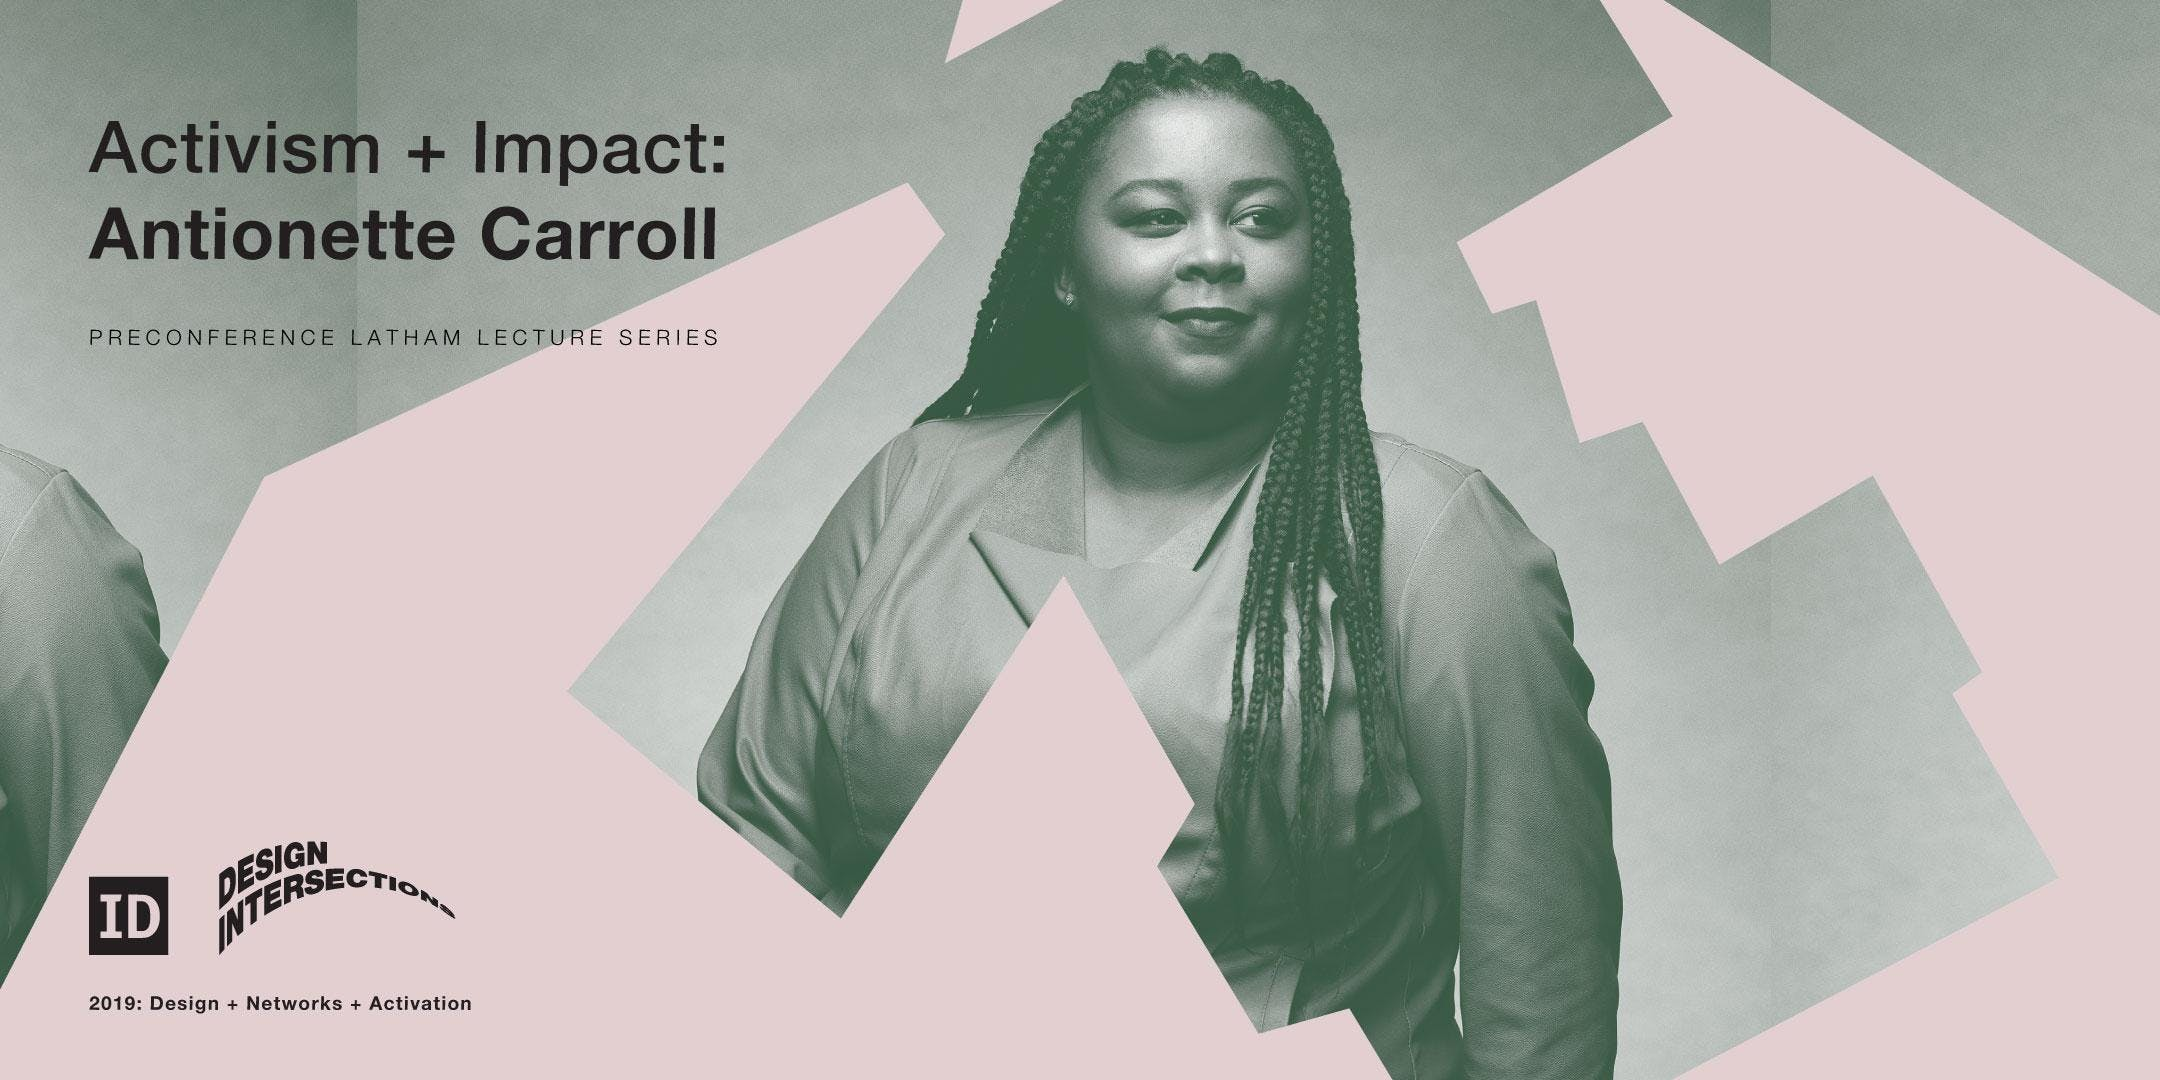 Activism + Impact: Antionette Carroll